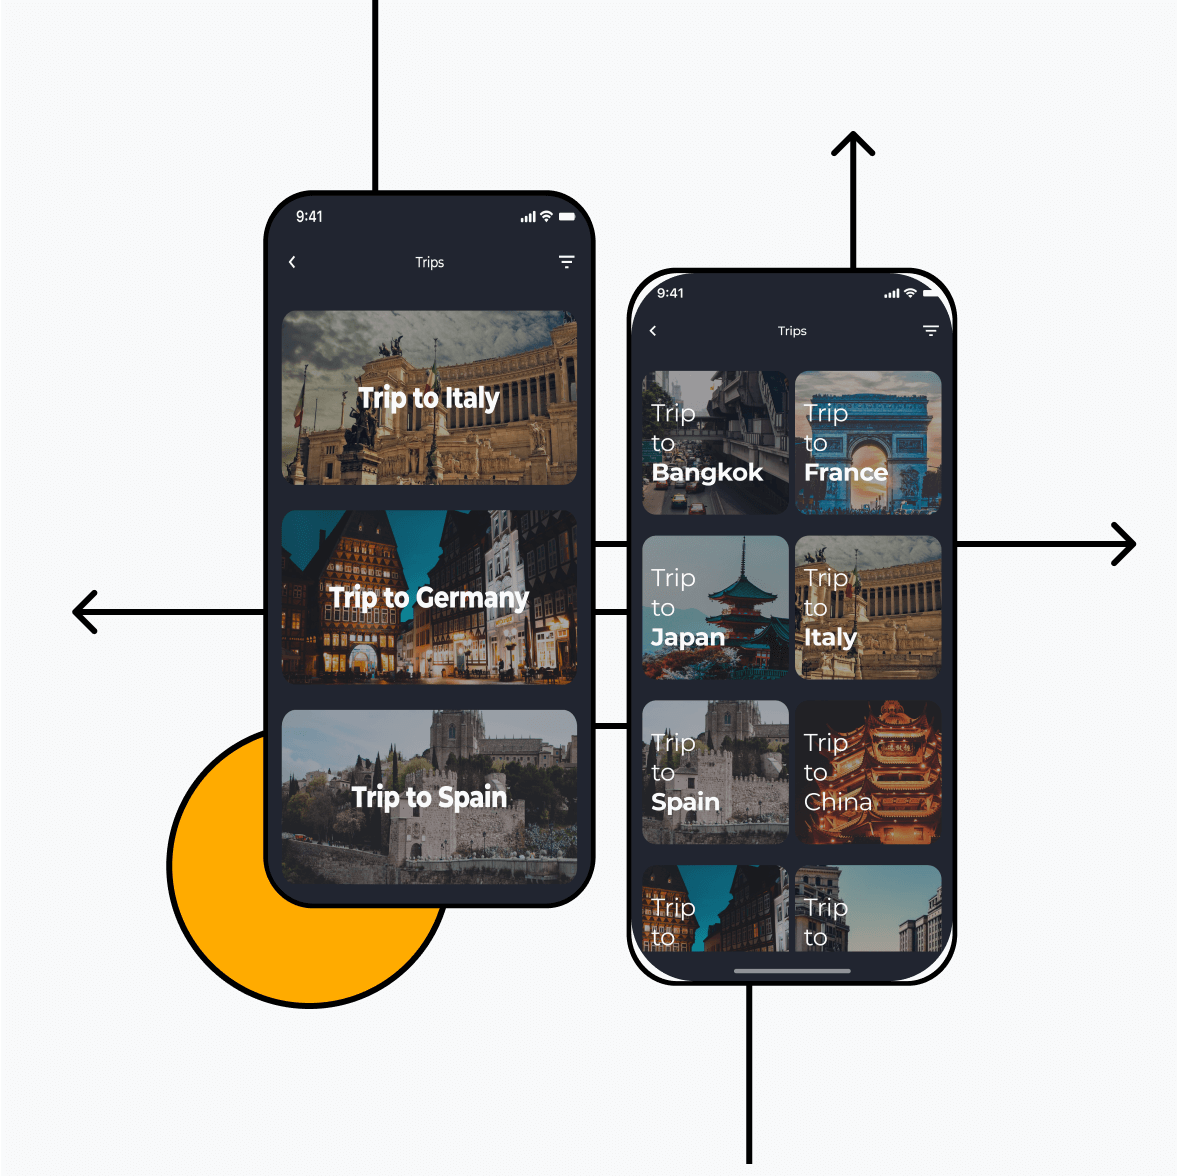 Itinerary app with trips and locations